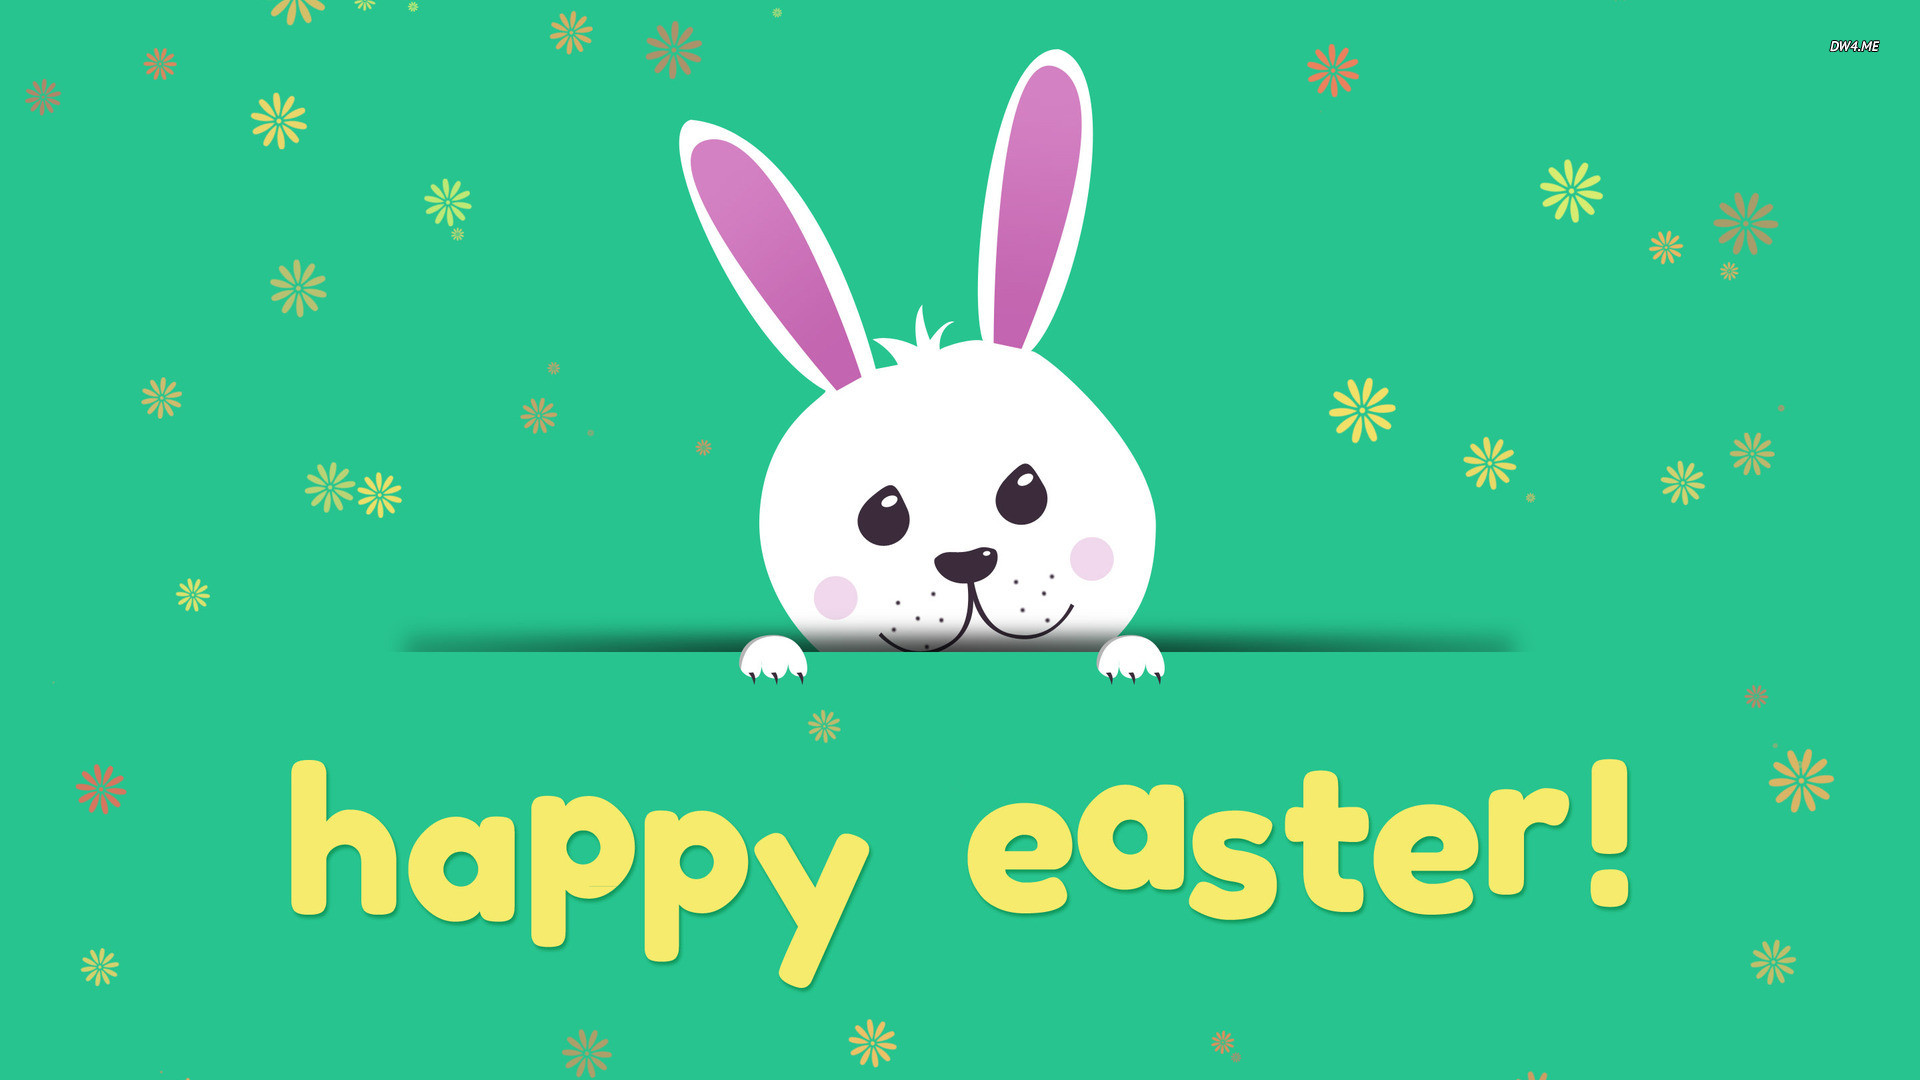 Happy Easter Cute Bunny HD Wallpapers   Easter Eggs 1920x1080